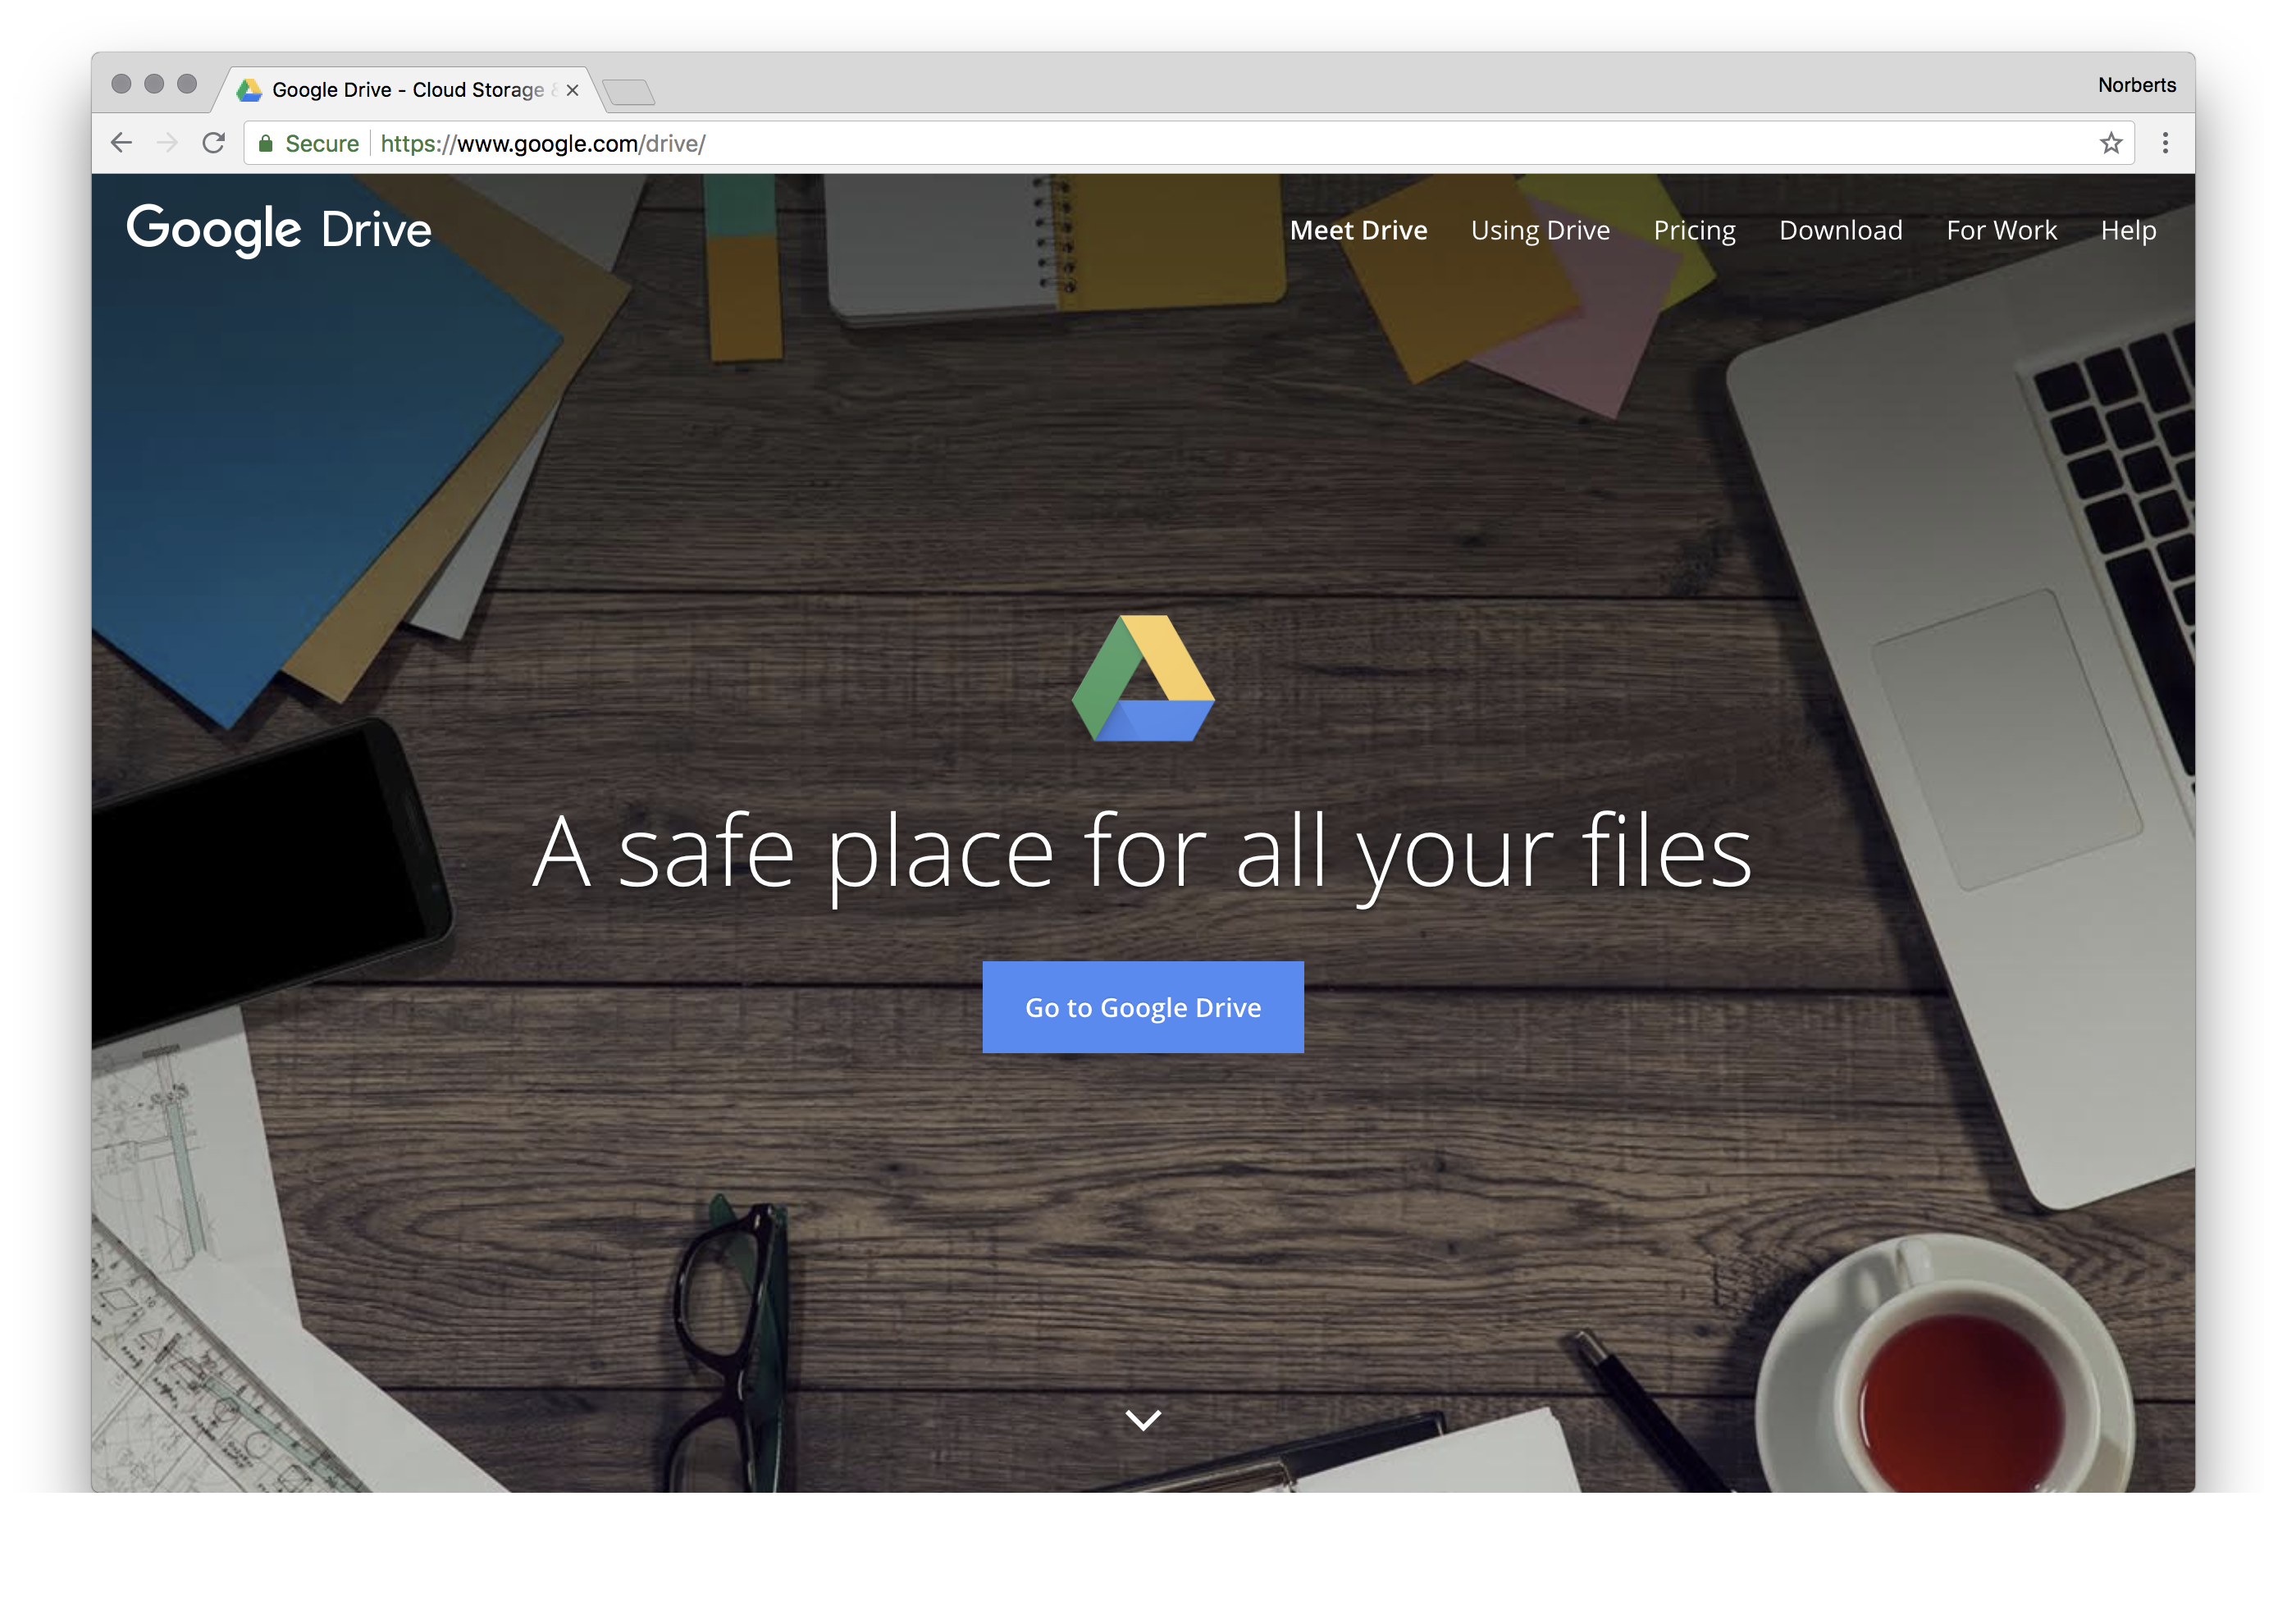 Get access to files anywhere through secure cloud storage and file backup for your photos, videos, files and more with Google Drive.